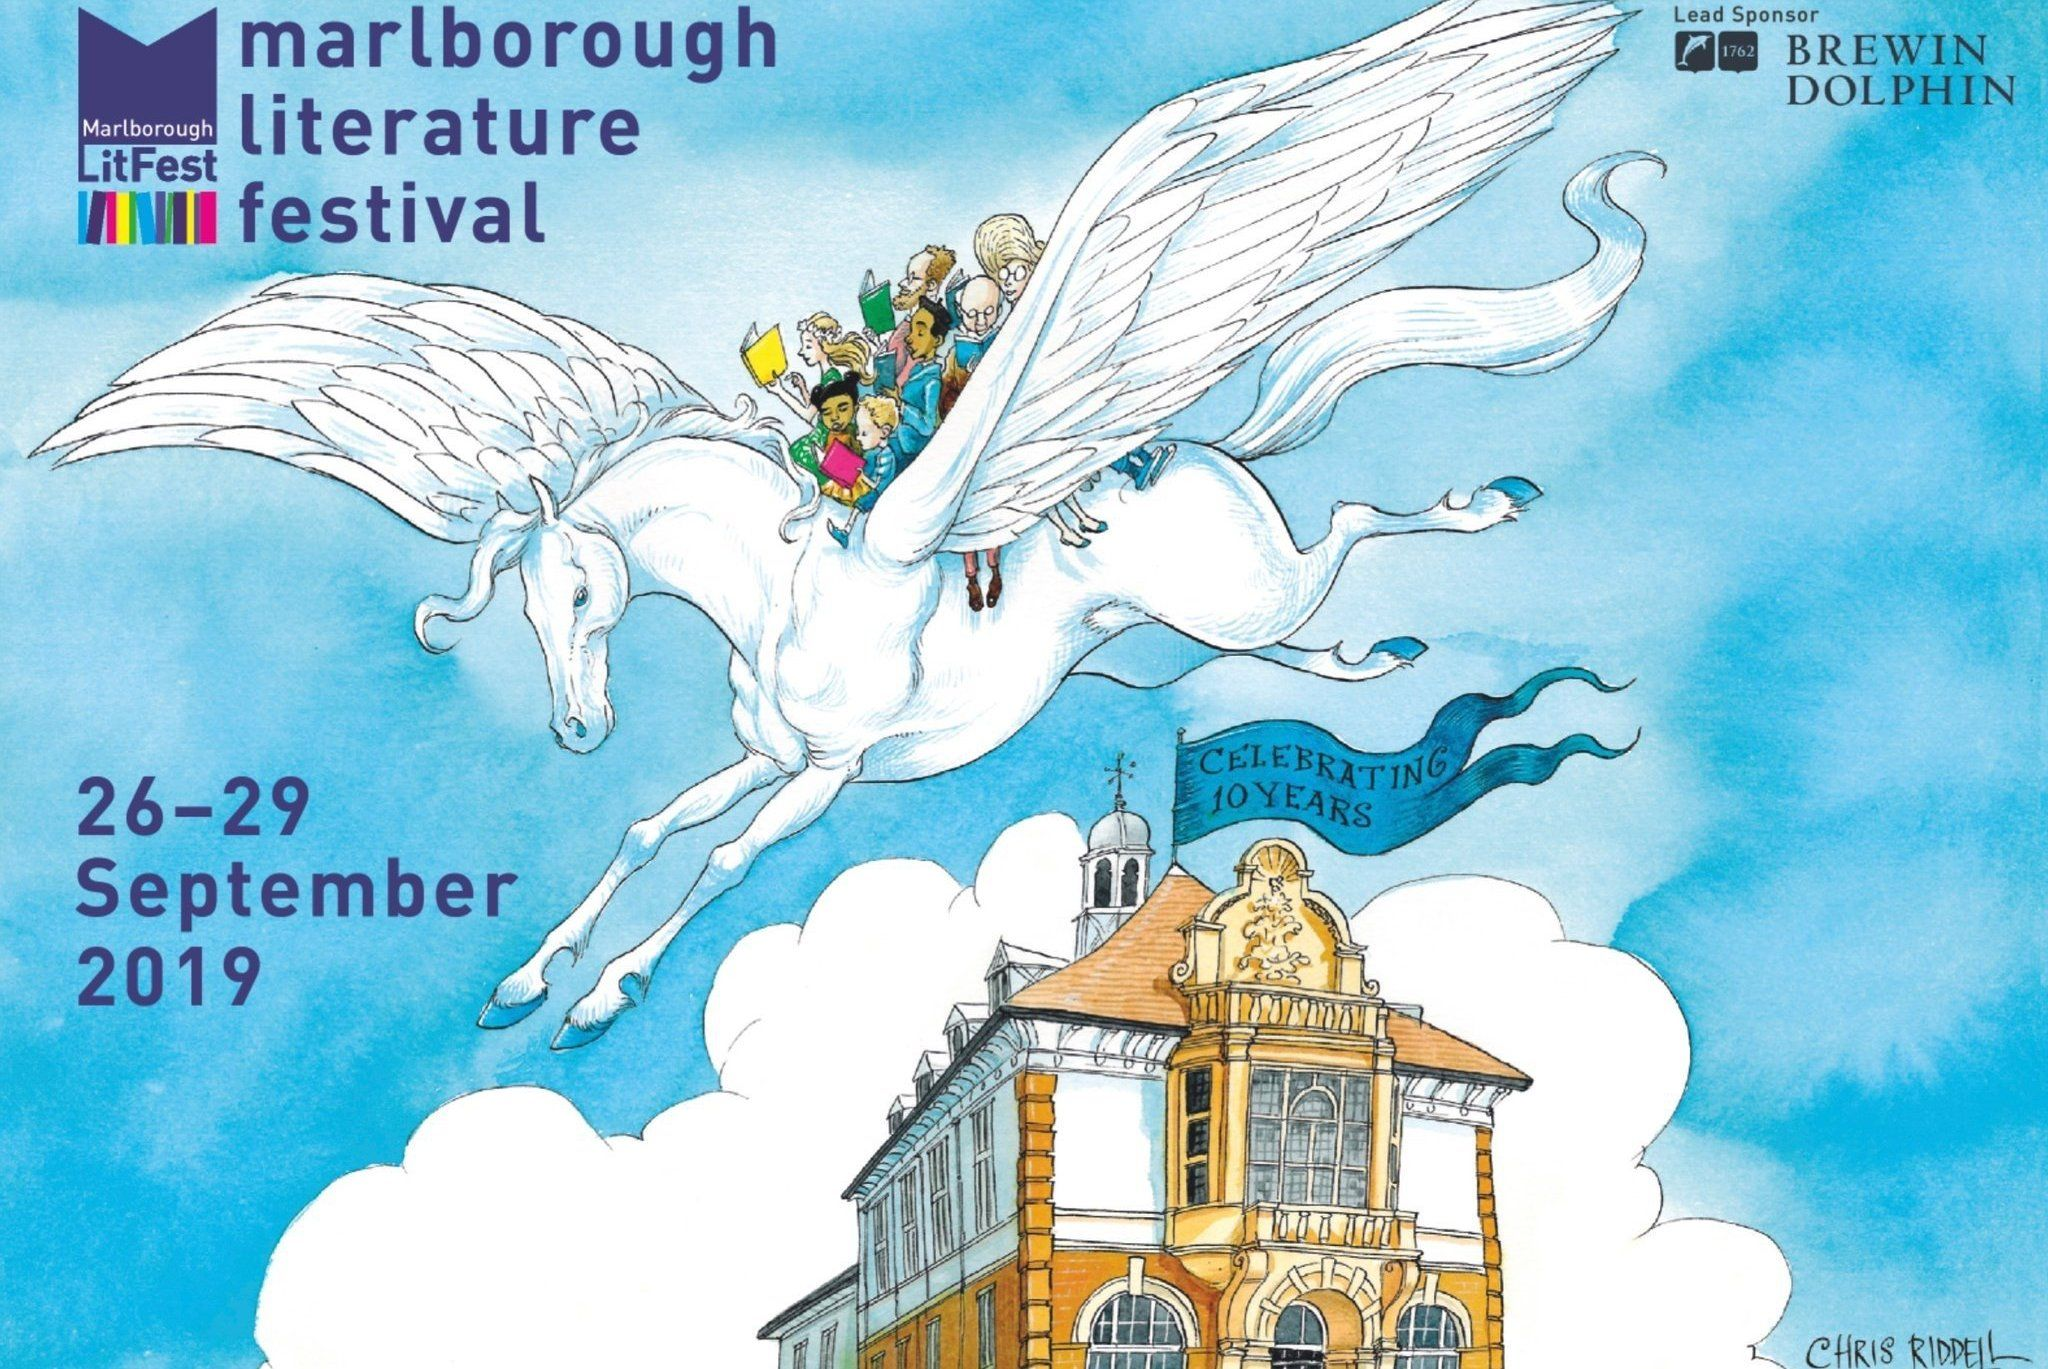 26-29 September - Marlborough LitFest